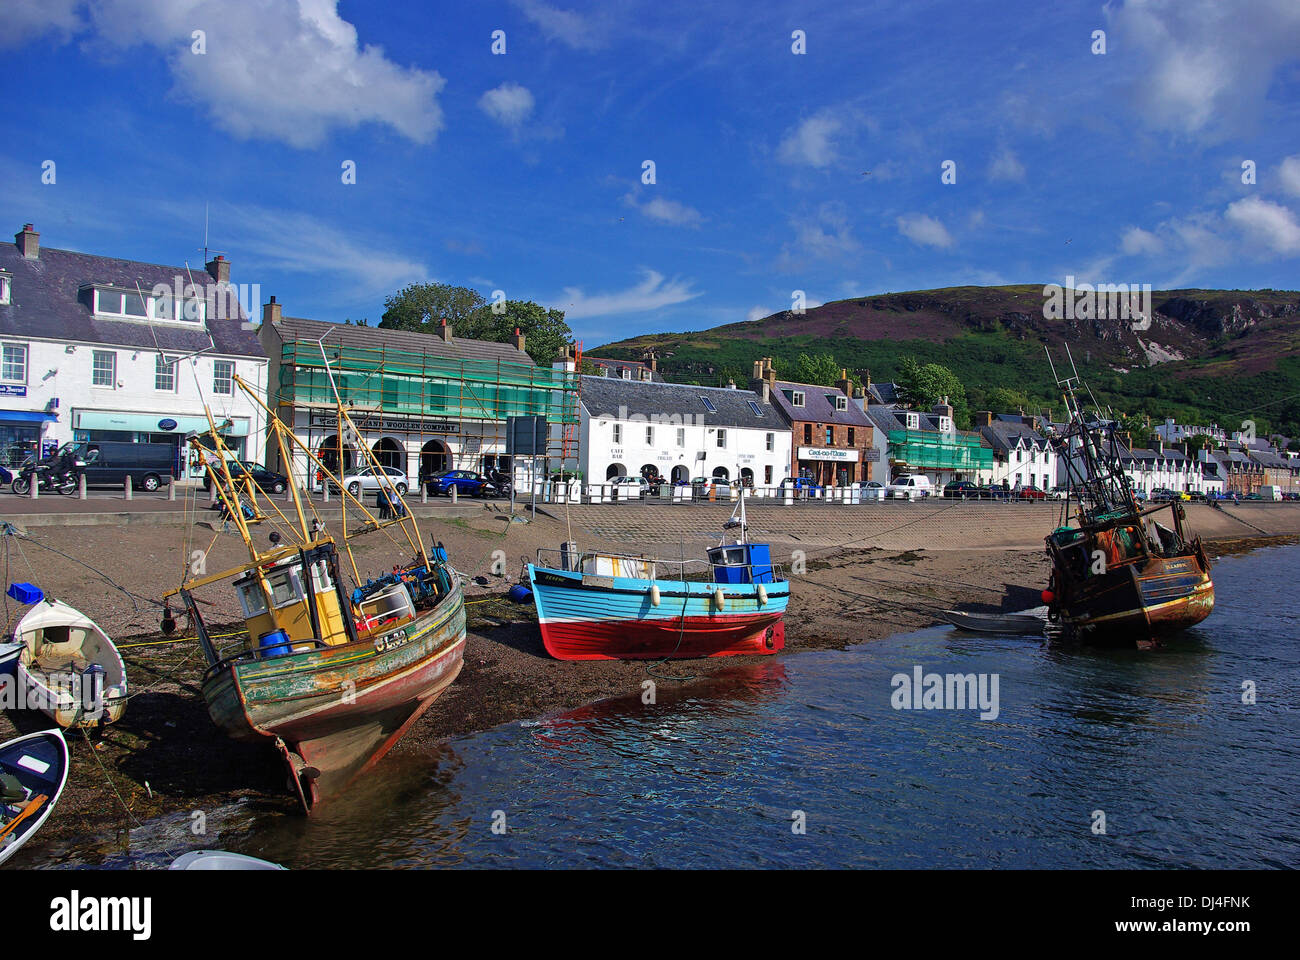 Ullapool harbour - Stock Image